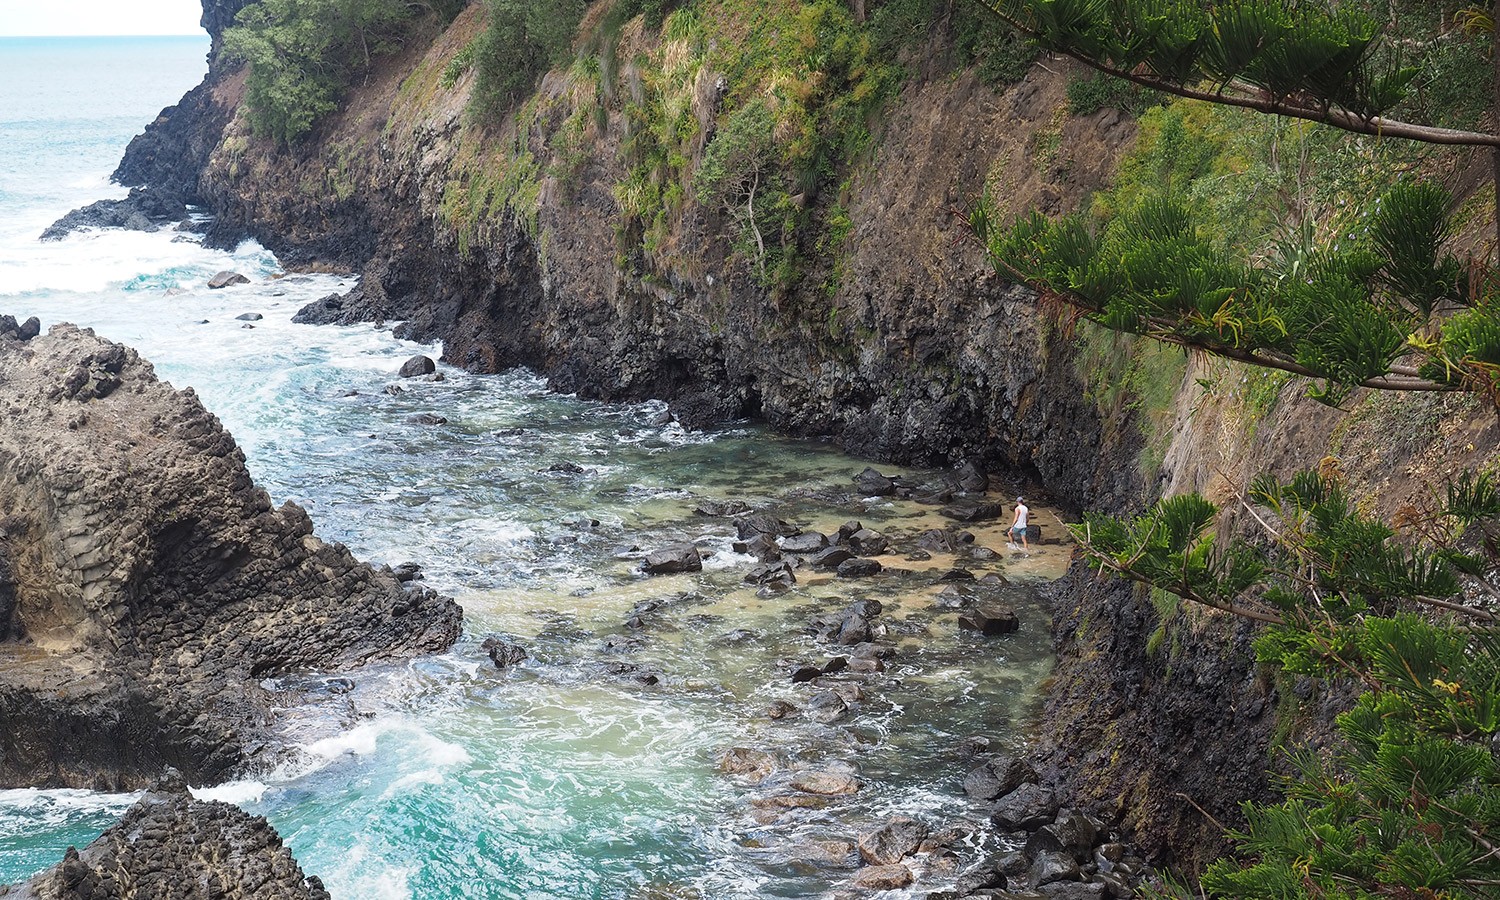 They may be difficult to access, but Anson Bay's rock pools are worth the hike.